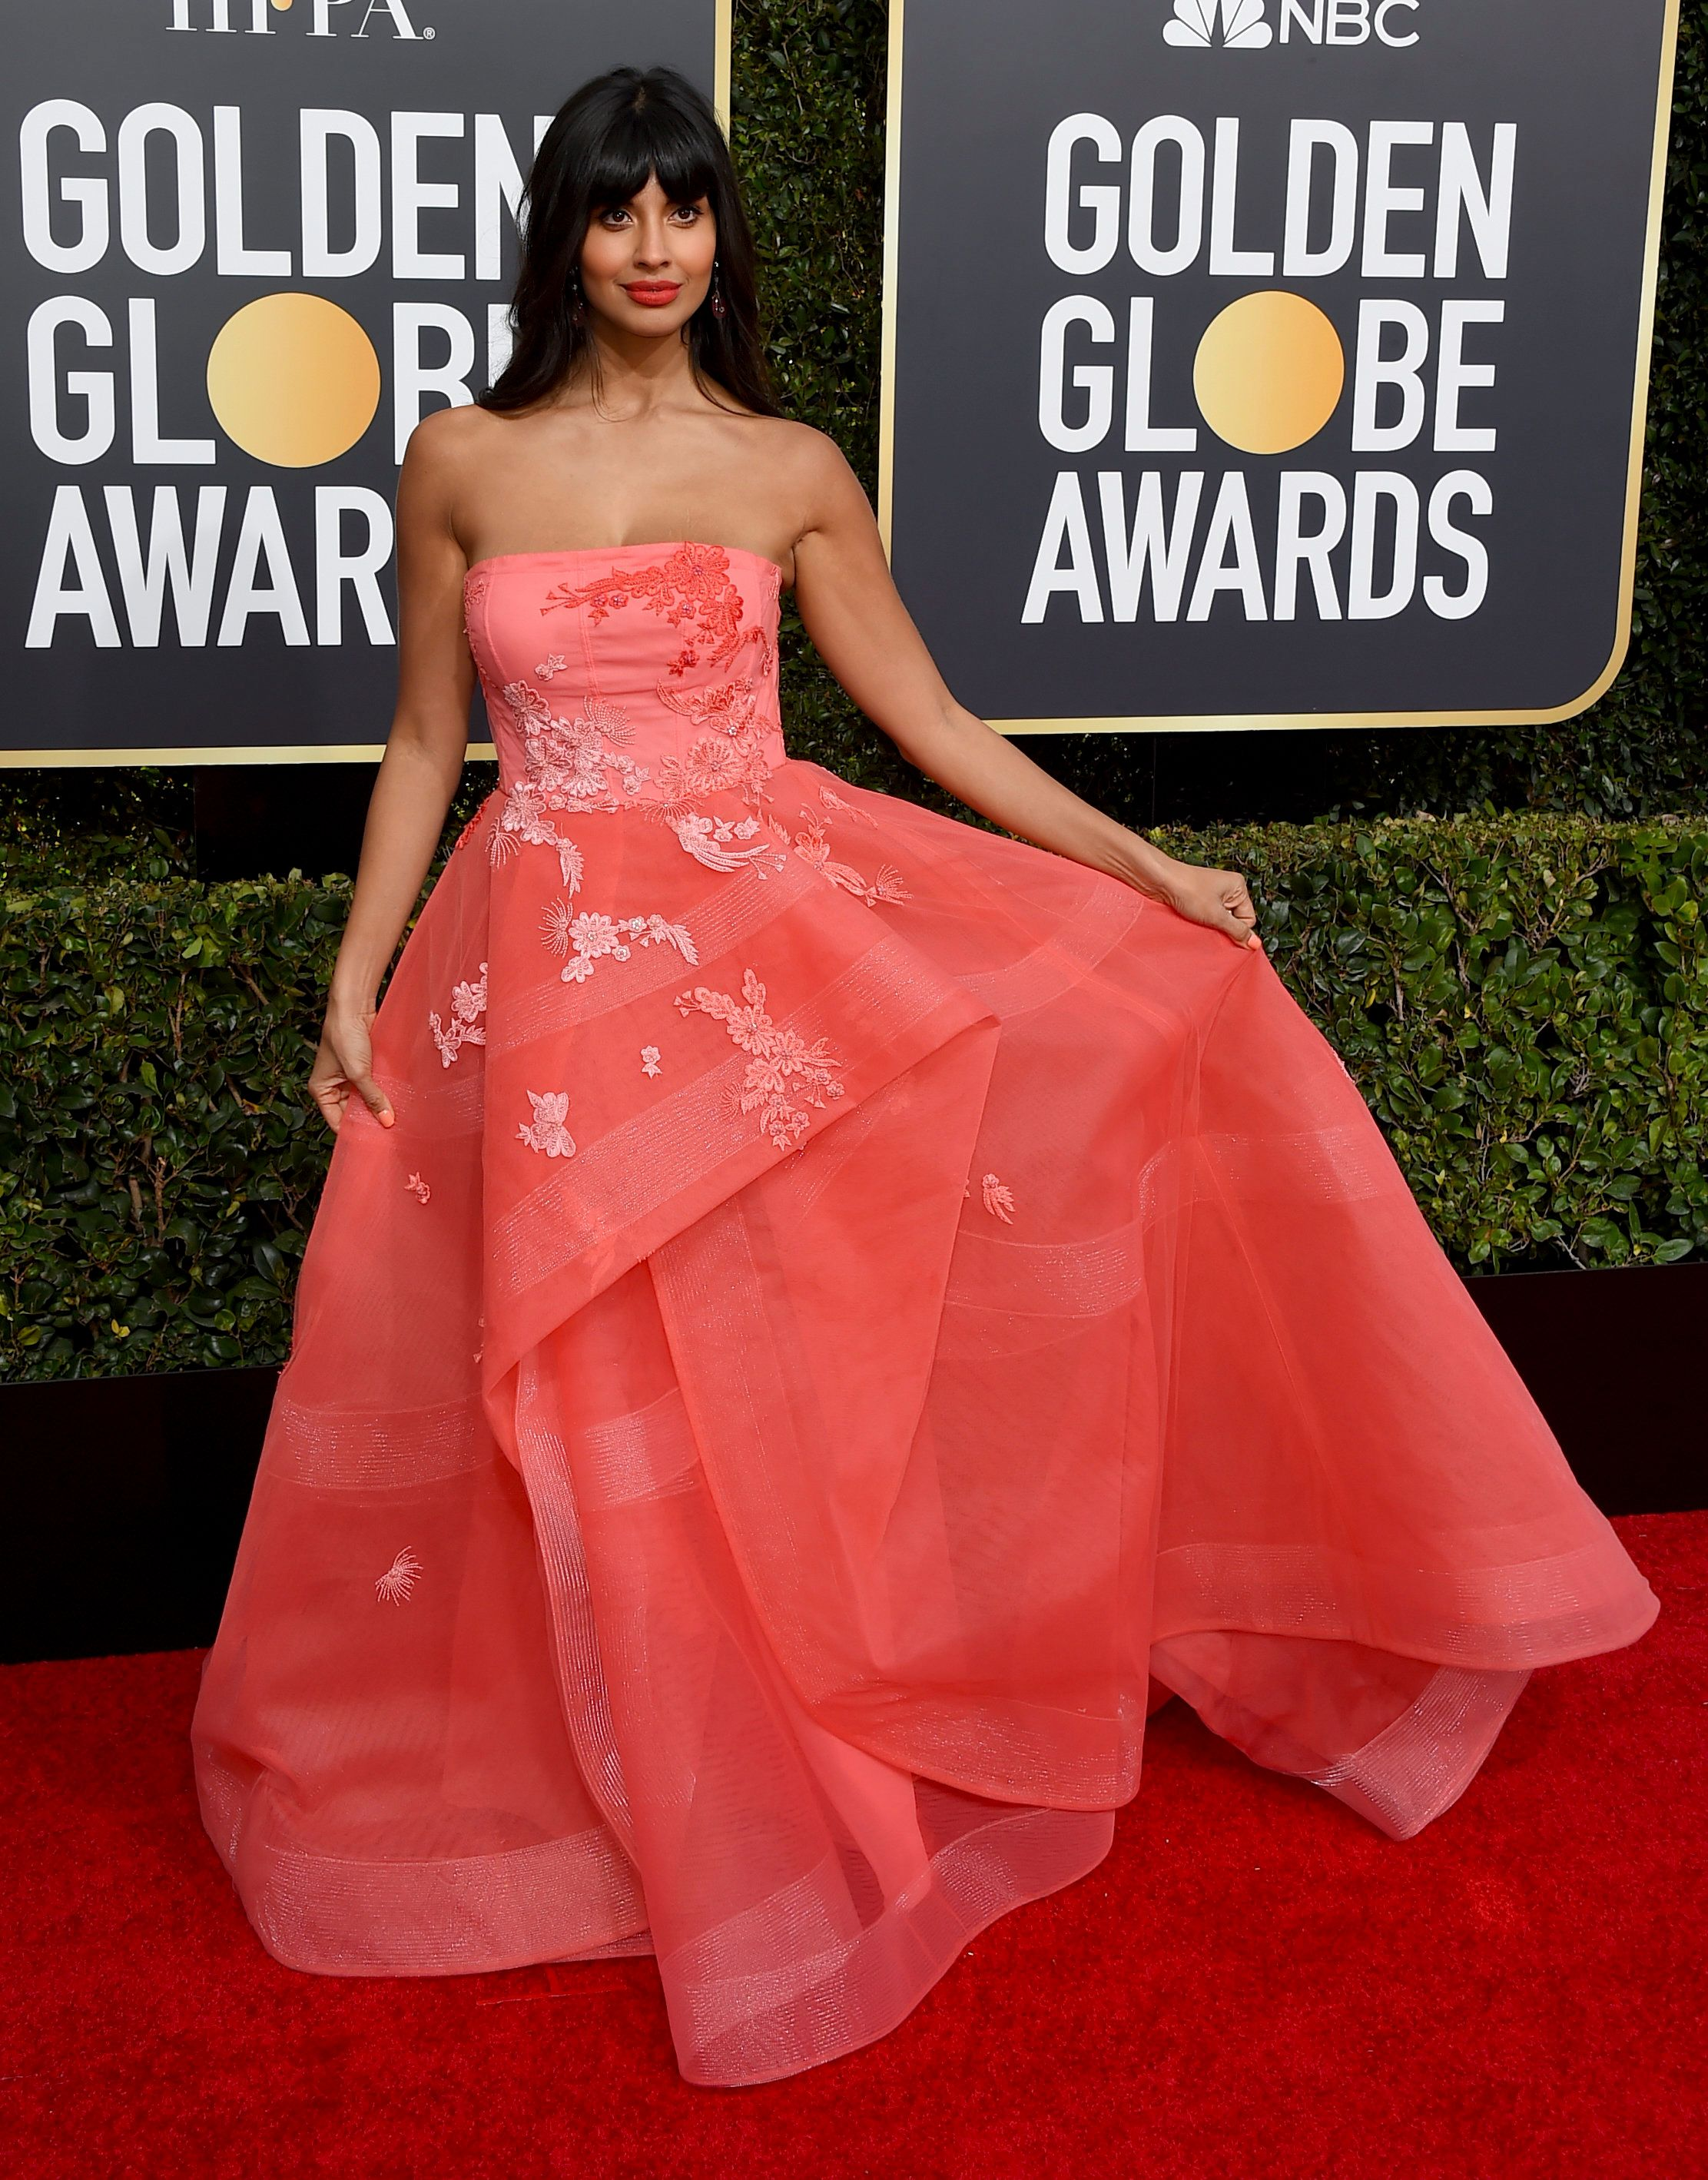 Jameela Jamil arrives at the 76th annual Golden Globe Awards on Sunday, Jan. 6, 2019, in Beverly